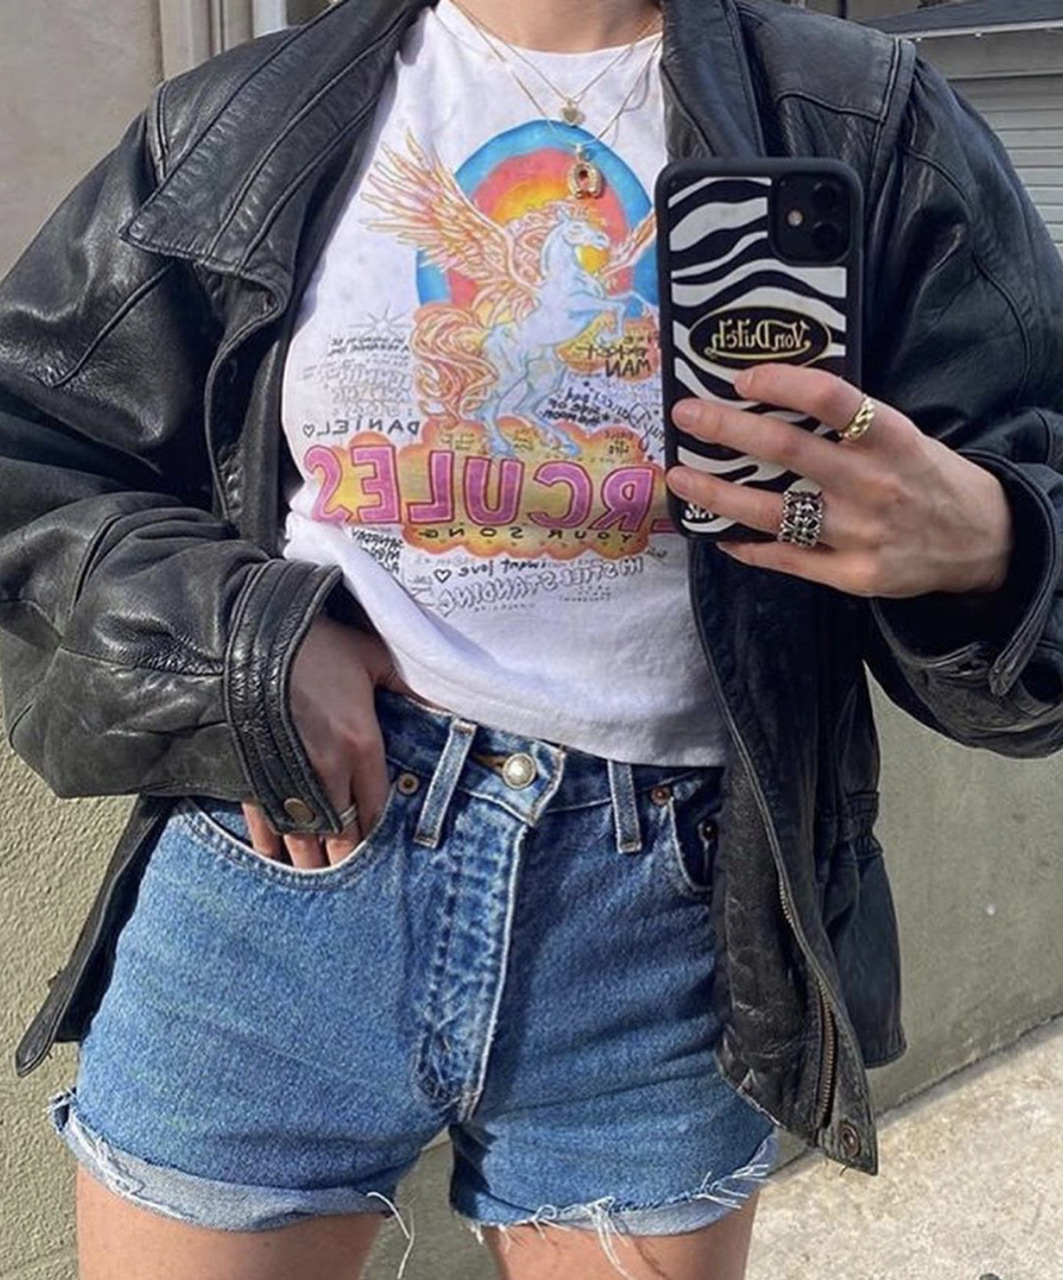 graphic tee, jeans, and leather jacket image